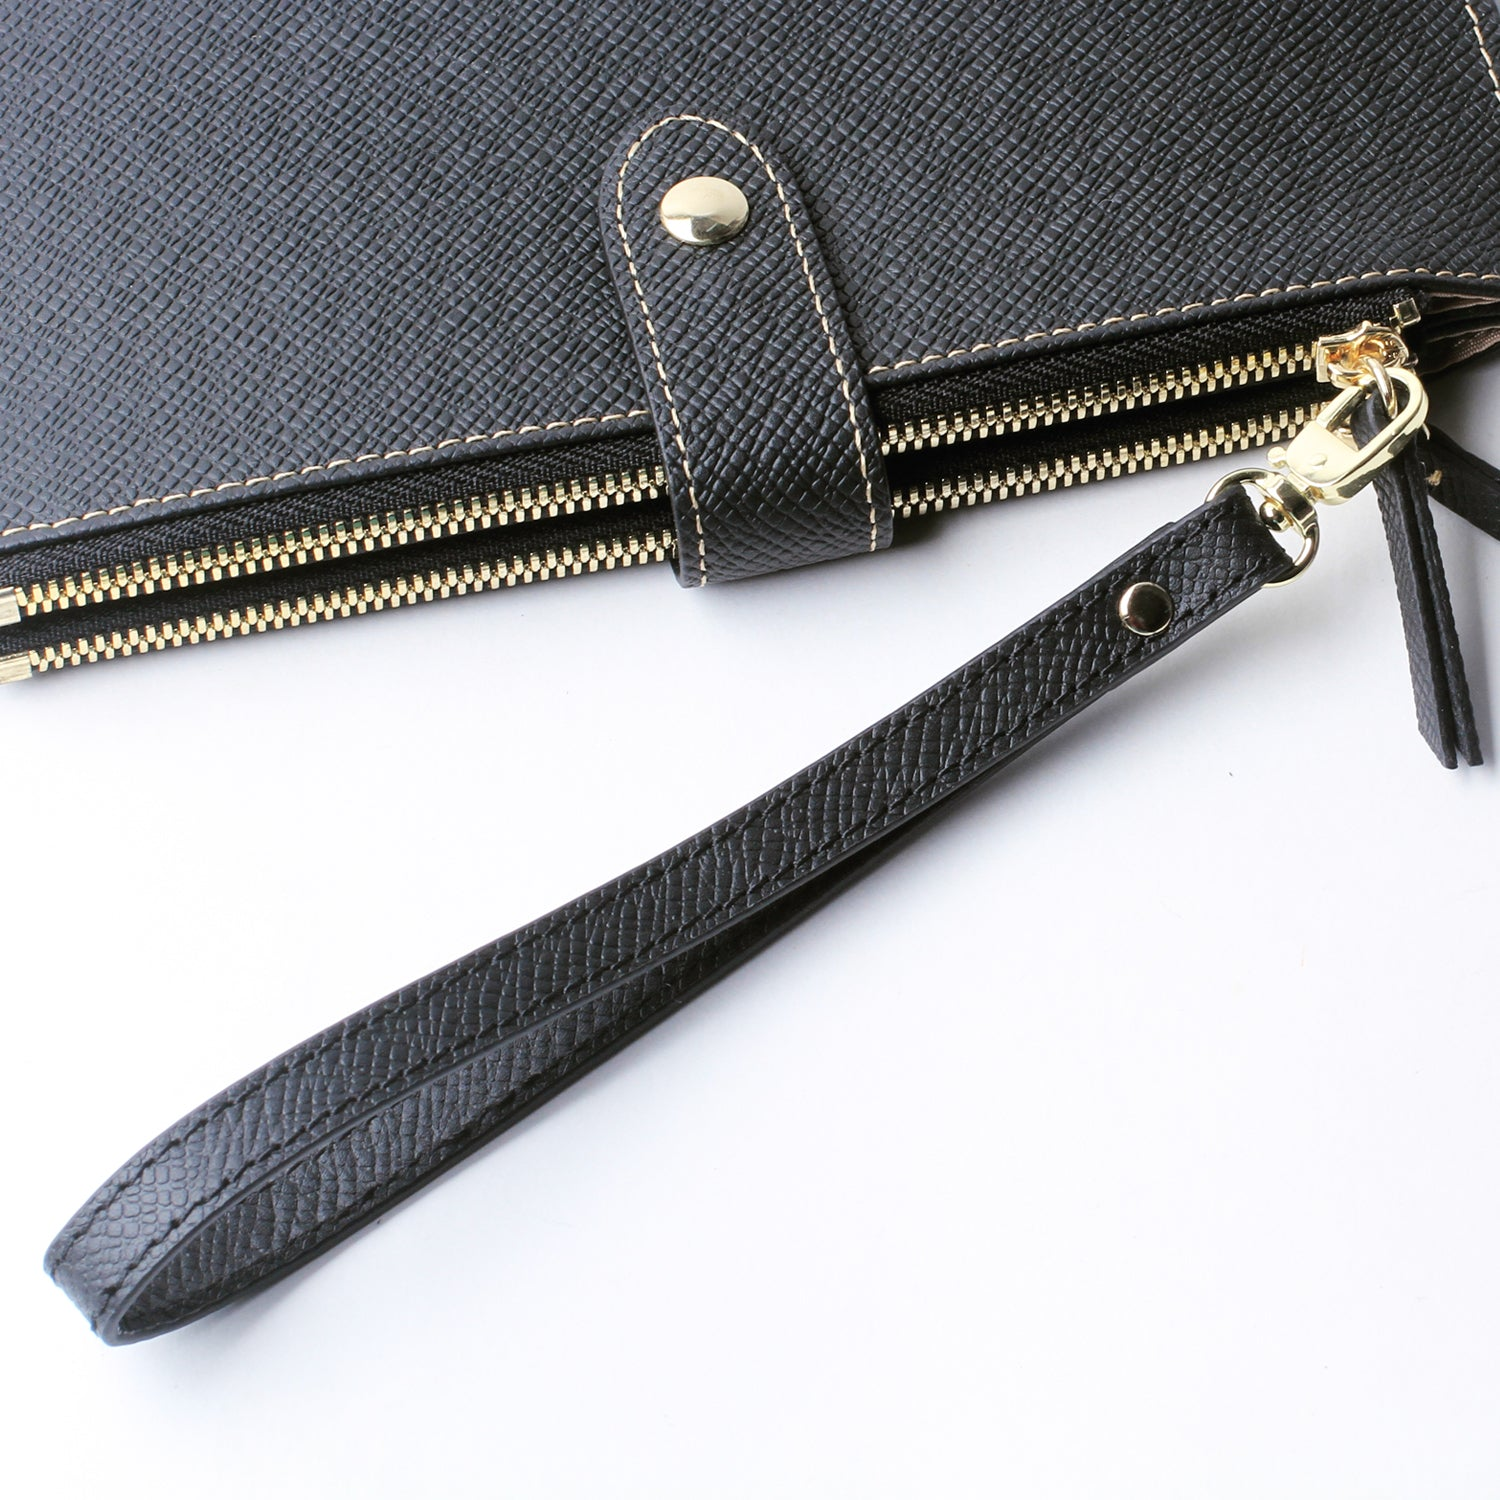 Leather Wristlet KeyChain Cellphone Hand Wrist Strap with Lock for Wallet Clutch Wristlet Purse Keys Black - Borgasets